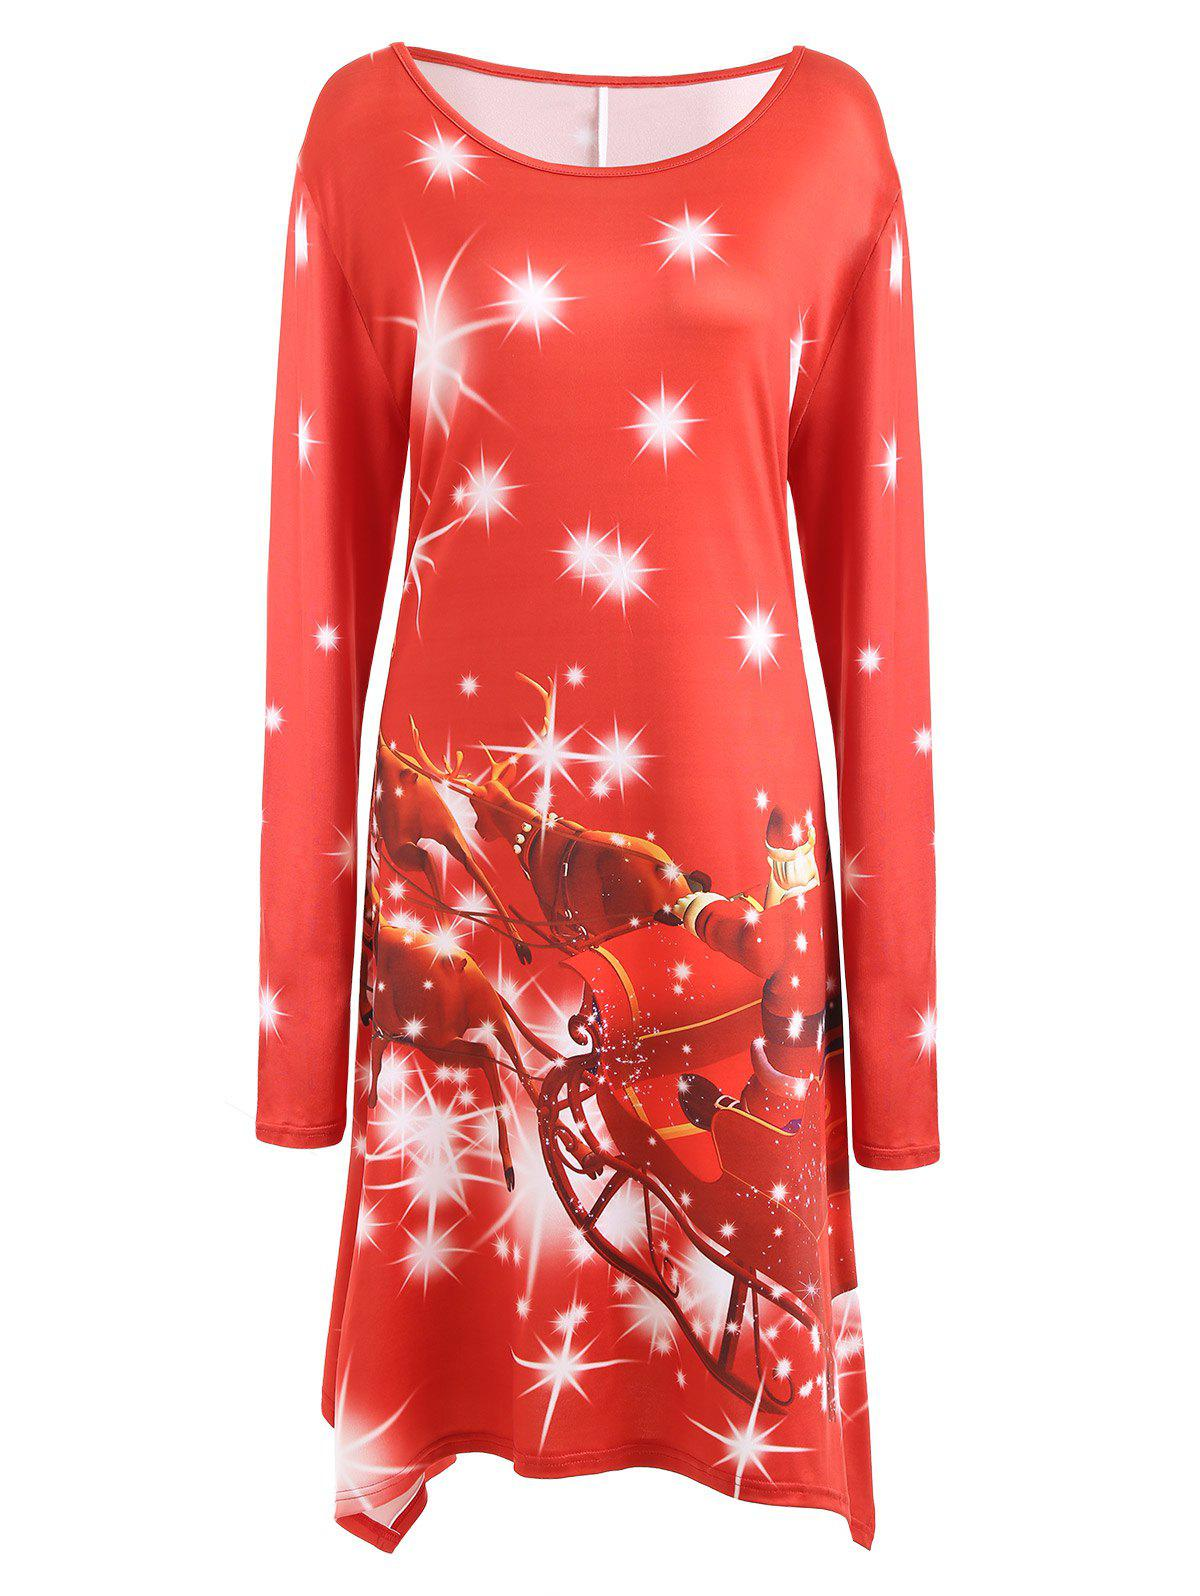 Plus Size Christmas Santa Printed Long Sleeve T-shirt DressWOMEN<br><br>Size: 3XL; Color: RED; Style: Casual; Material: Cotton Blend,Polyester; Silhouette: A-Line; Dresses Length: Knee-Length; Neckline: Round Collar; Sleeve Length: Long Sleeves; Pattern Type: Print; With Belt: No; Season: Fall,Winter; Weight: 0.3300kg; Package Contents: 1 x Dress;